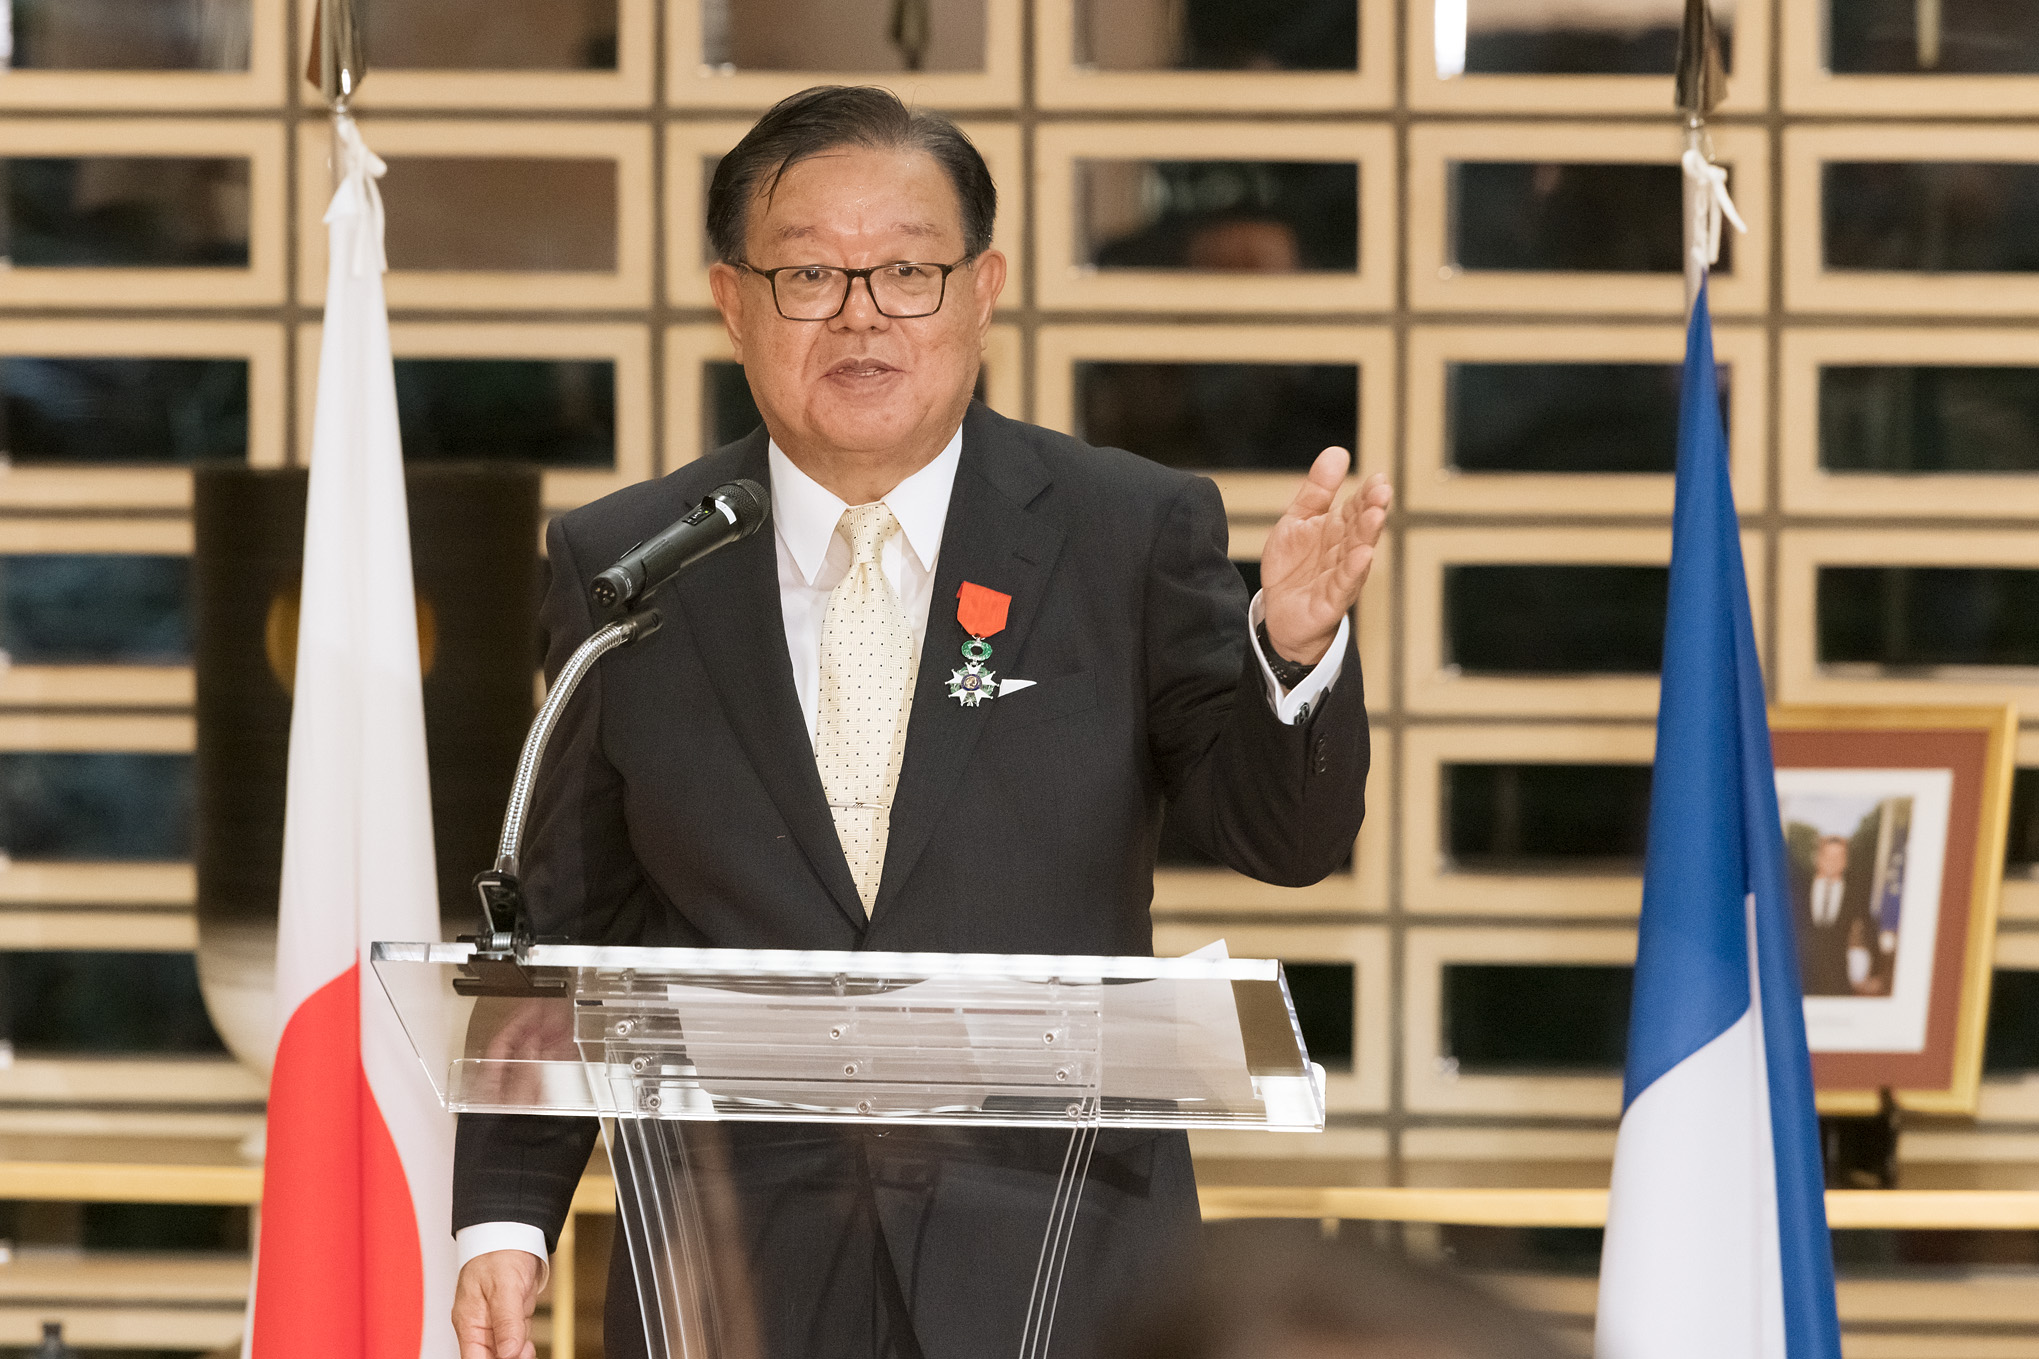 Jun Murai speaking after receiving the Knight of the Legion of Honour Medal.